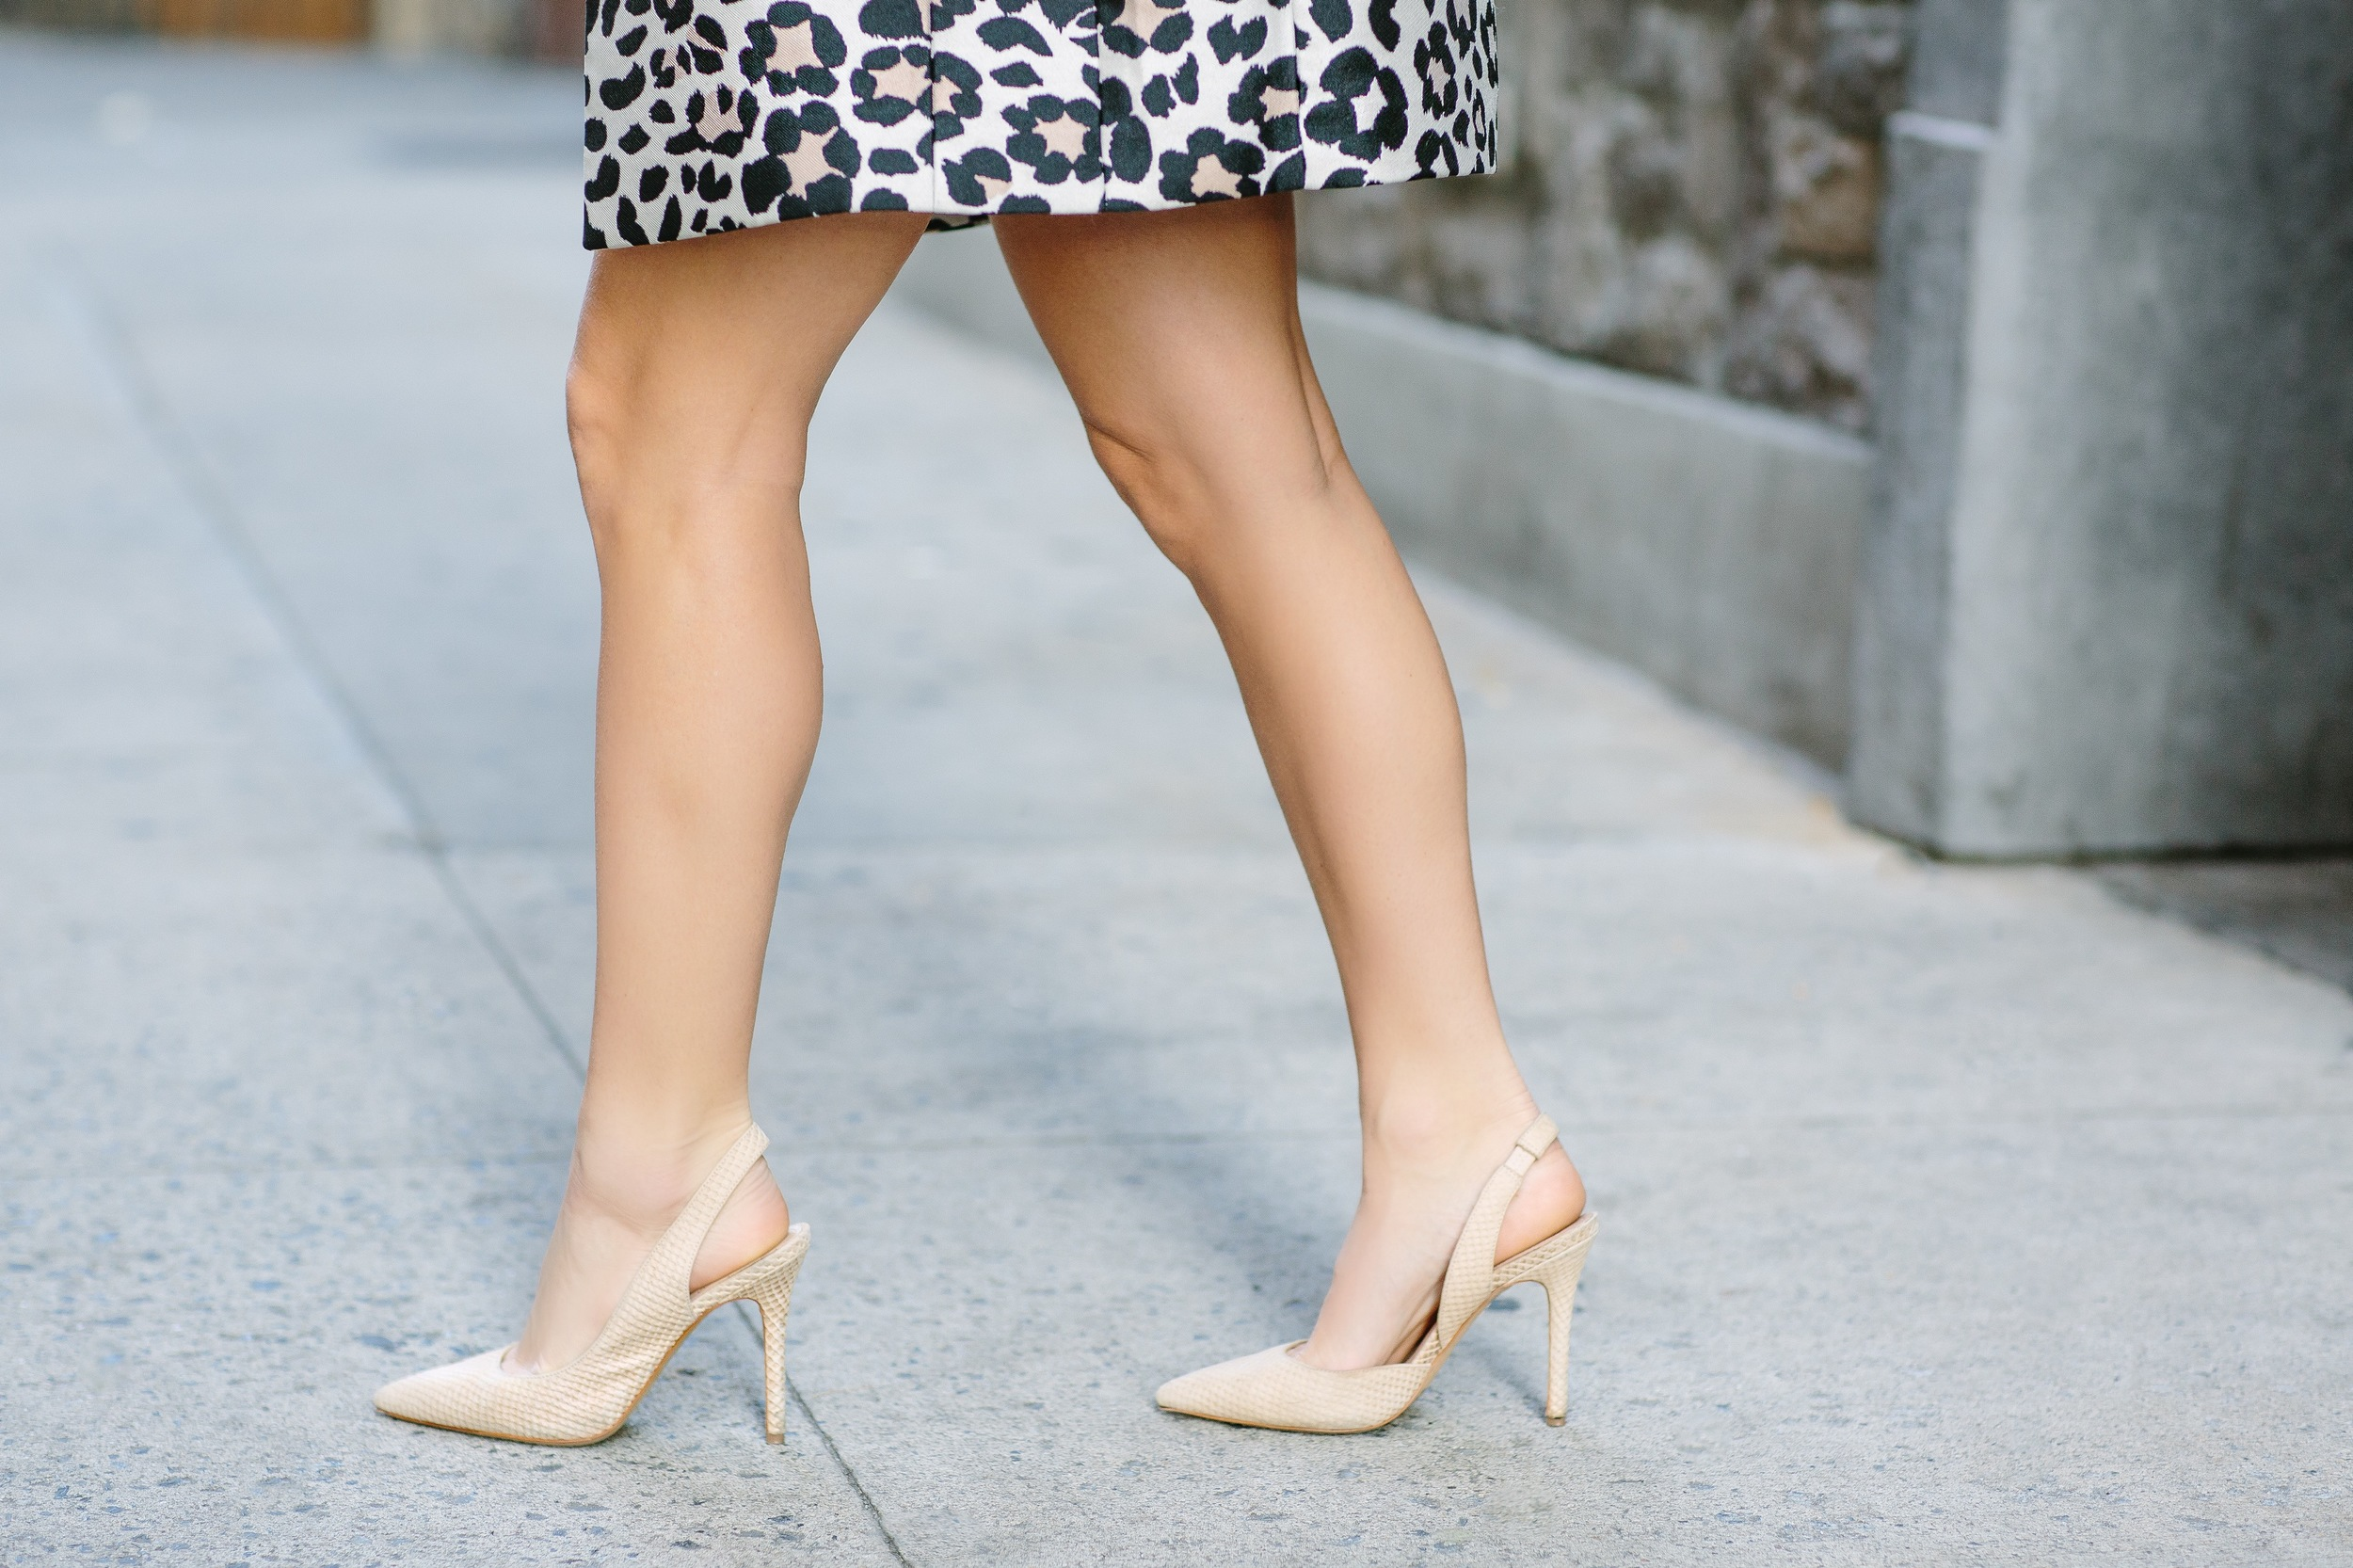 Vince Camuto Shoes & Leopard Top_Fashion Ambitionist.JPG